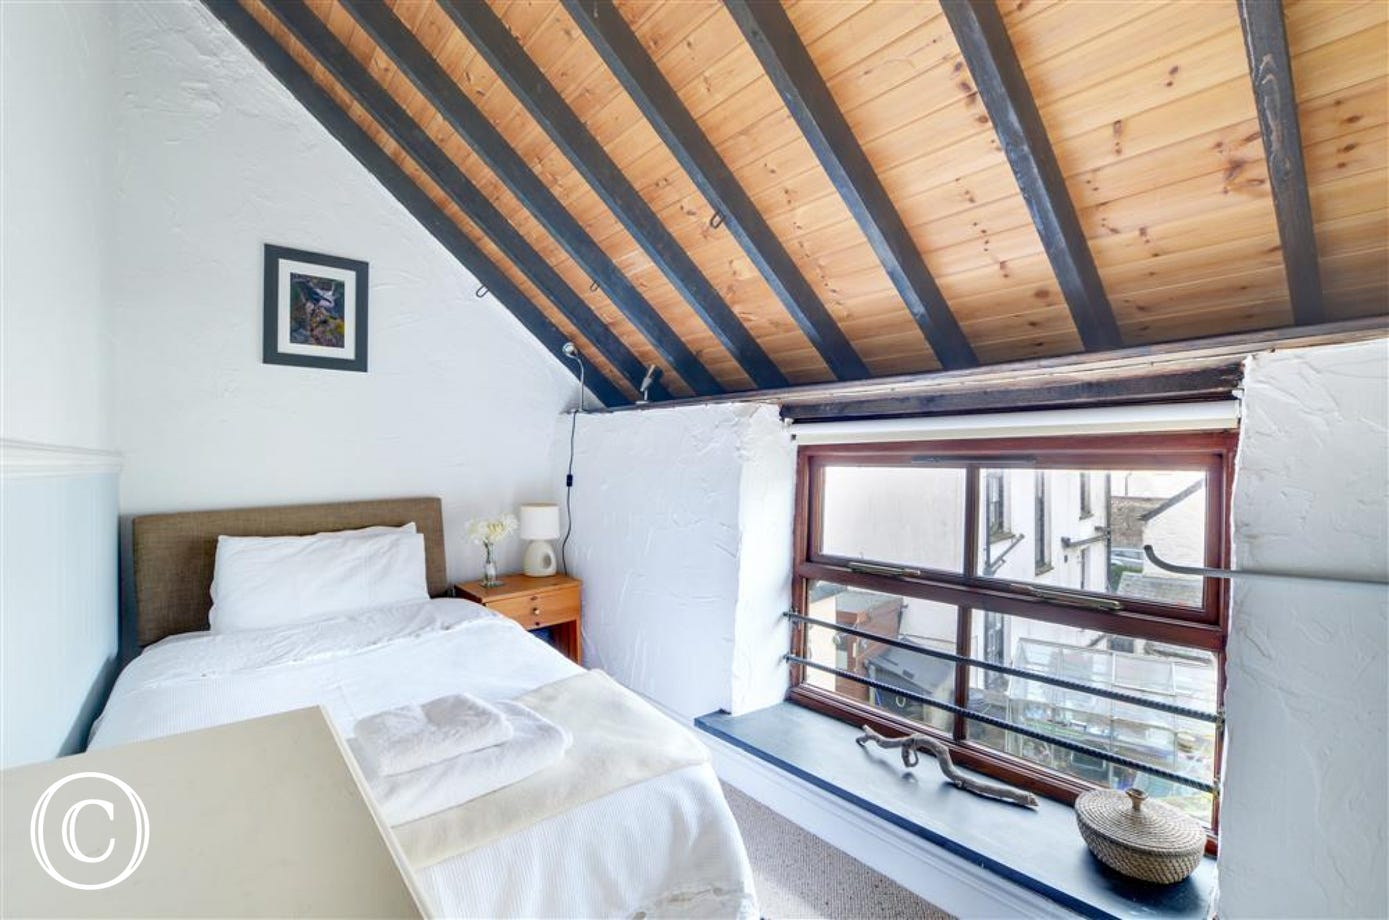 Single room with sloping ceiling and exposed beams.